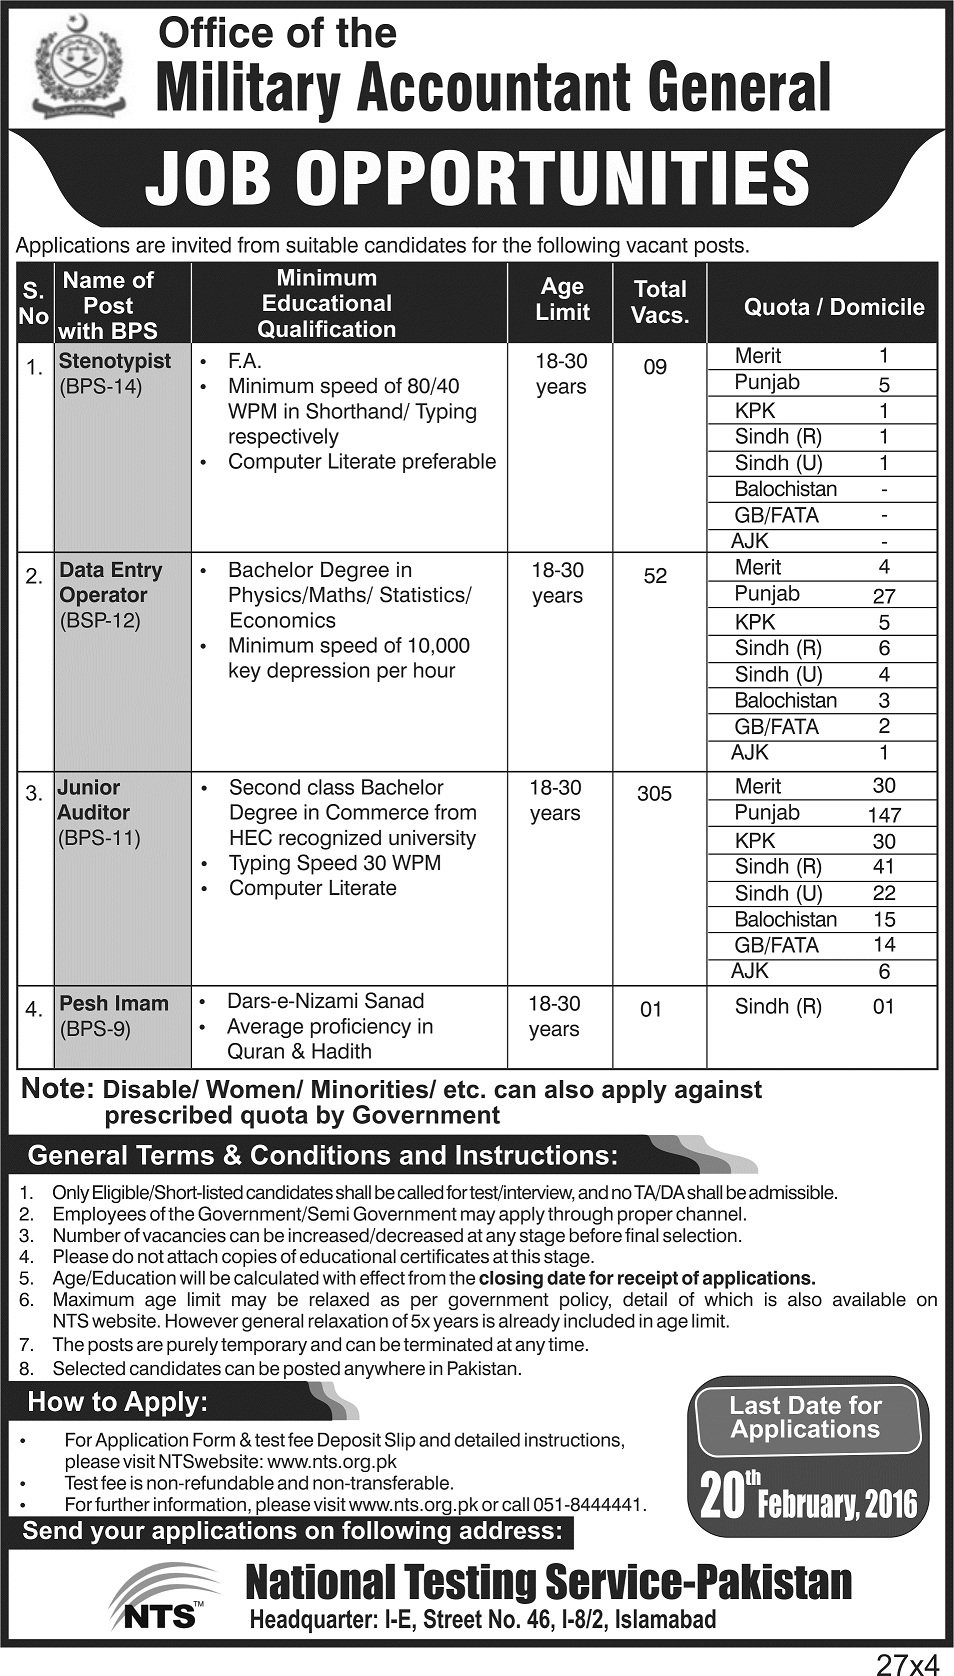 PMDA Pakistan Military Accountant General Jobs 2016 NTS Application Form Last Date